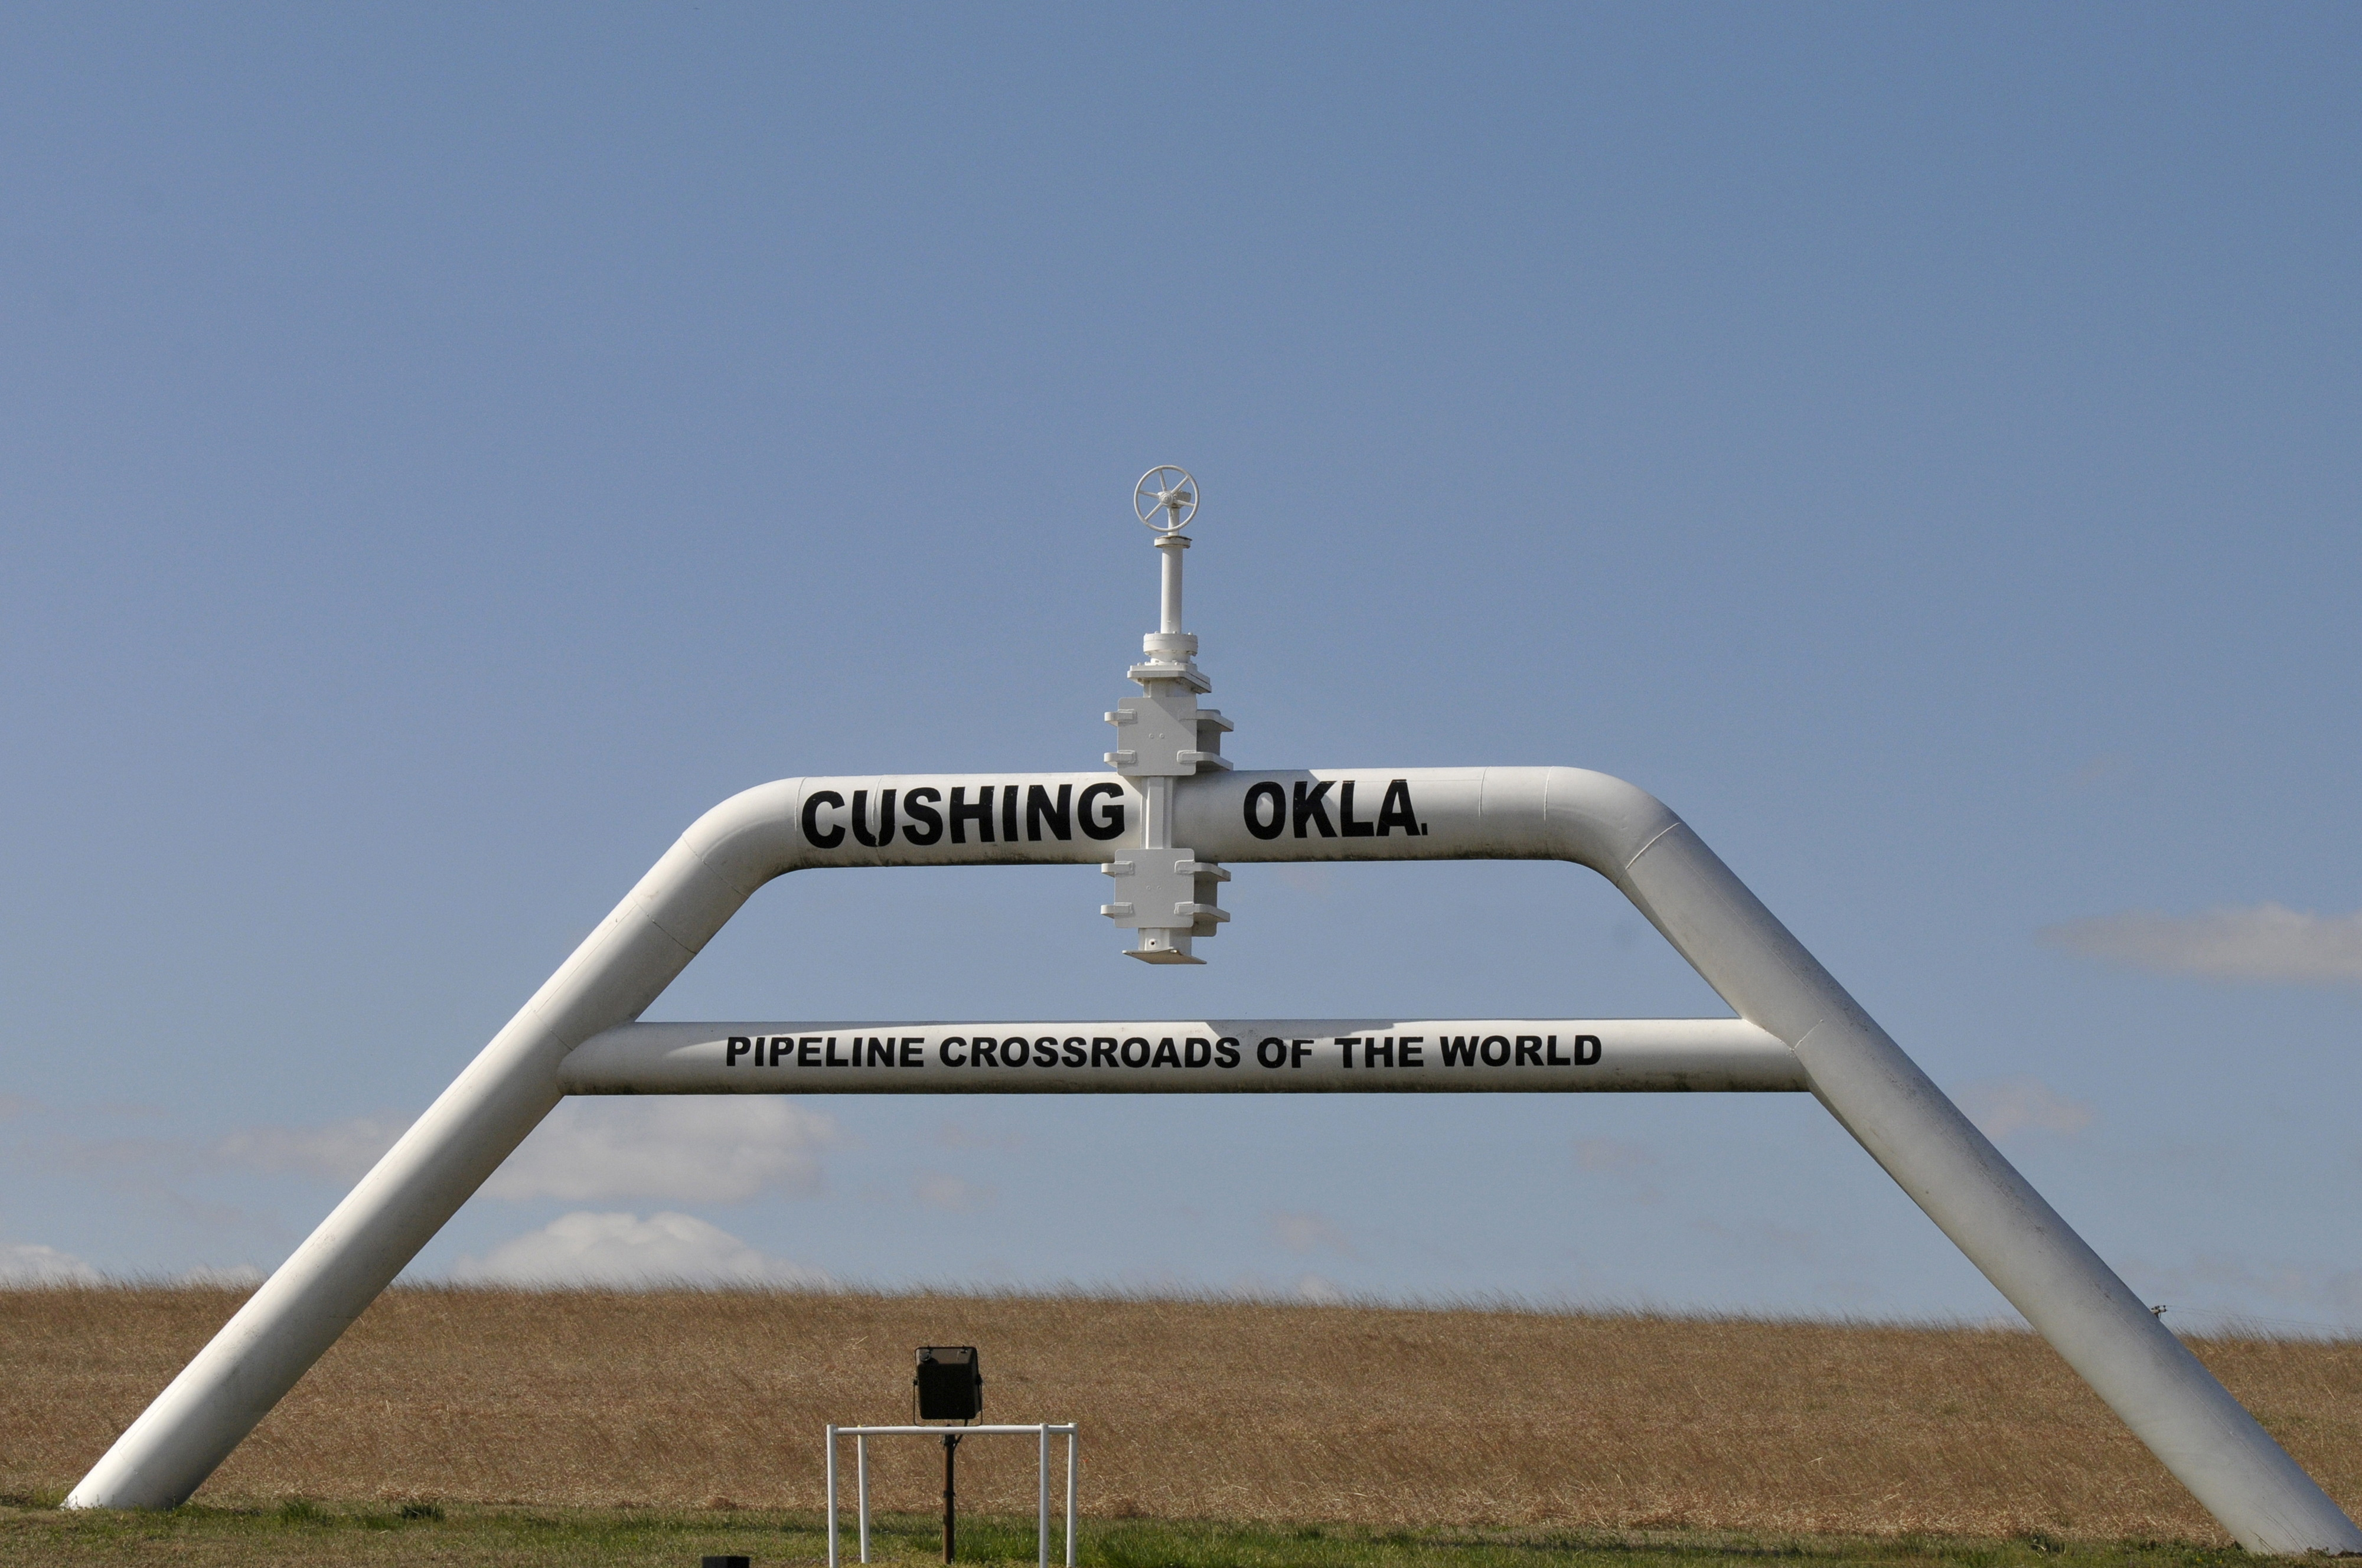 A sign built out of a pipeline that reads